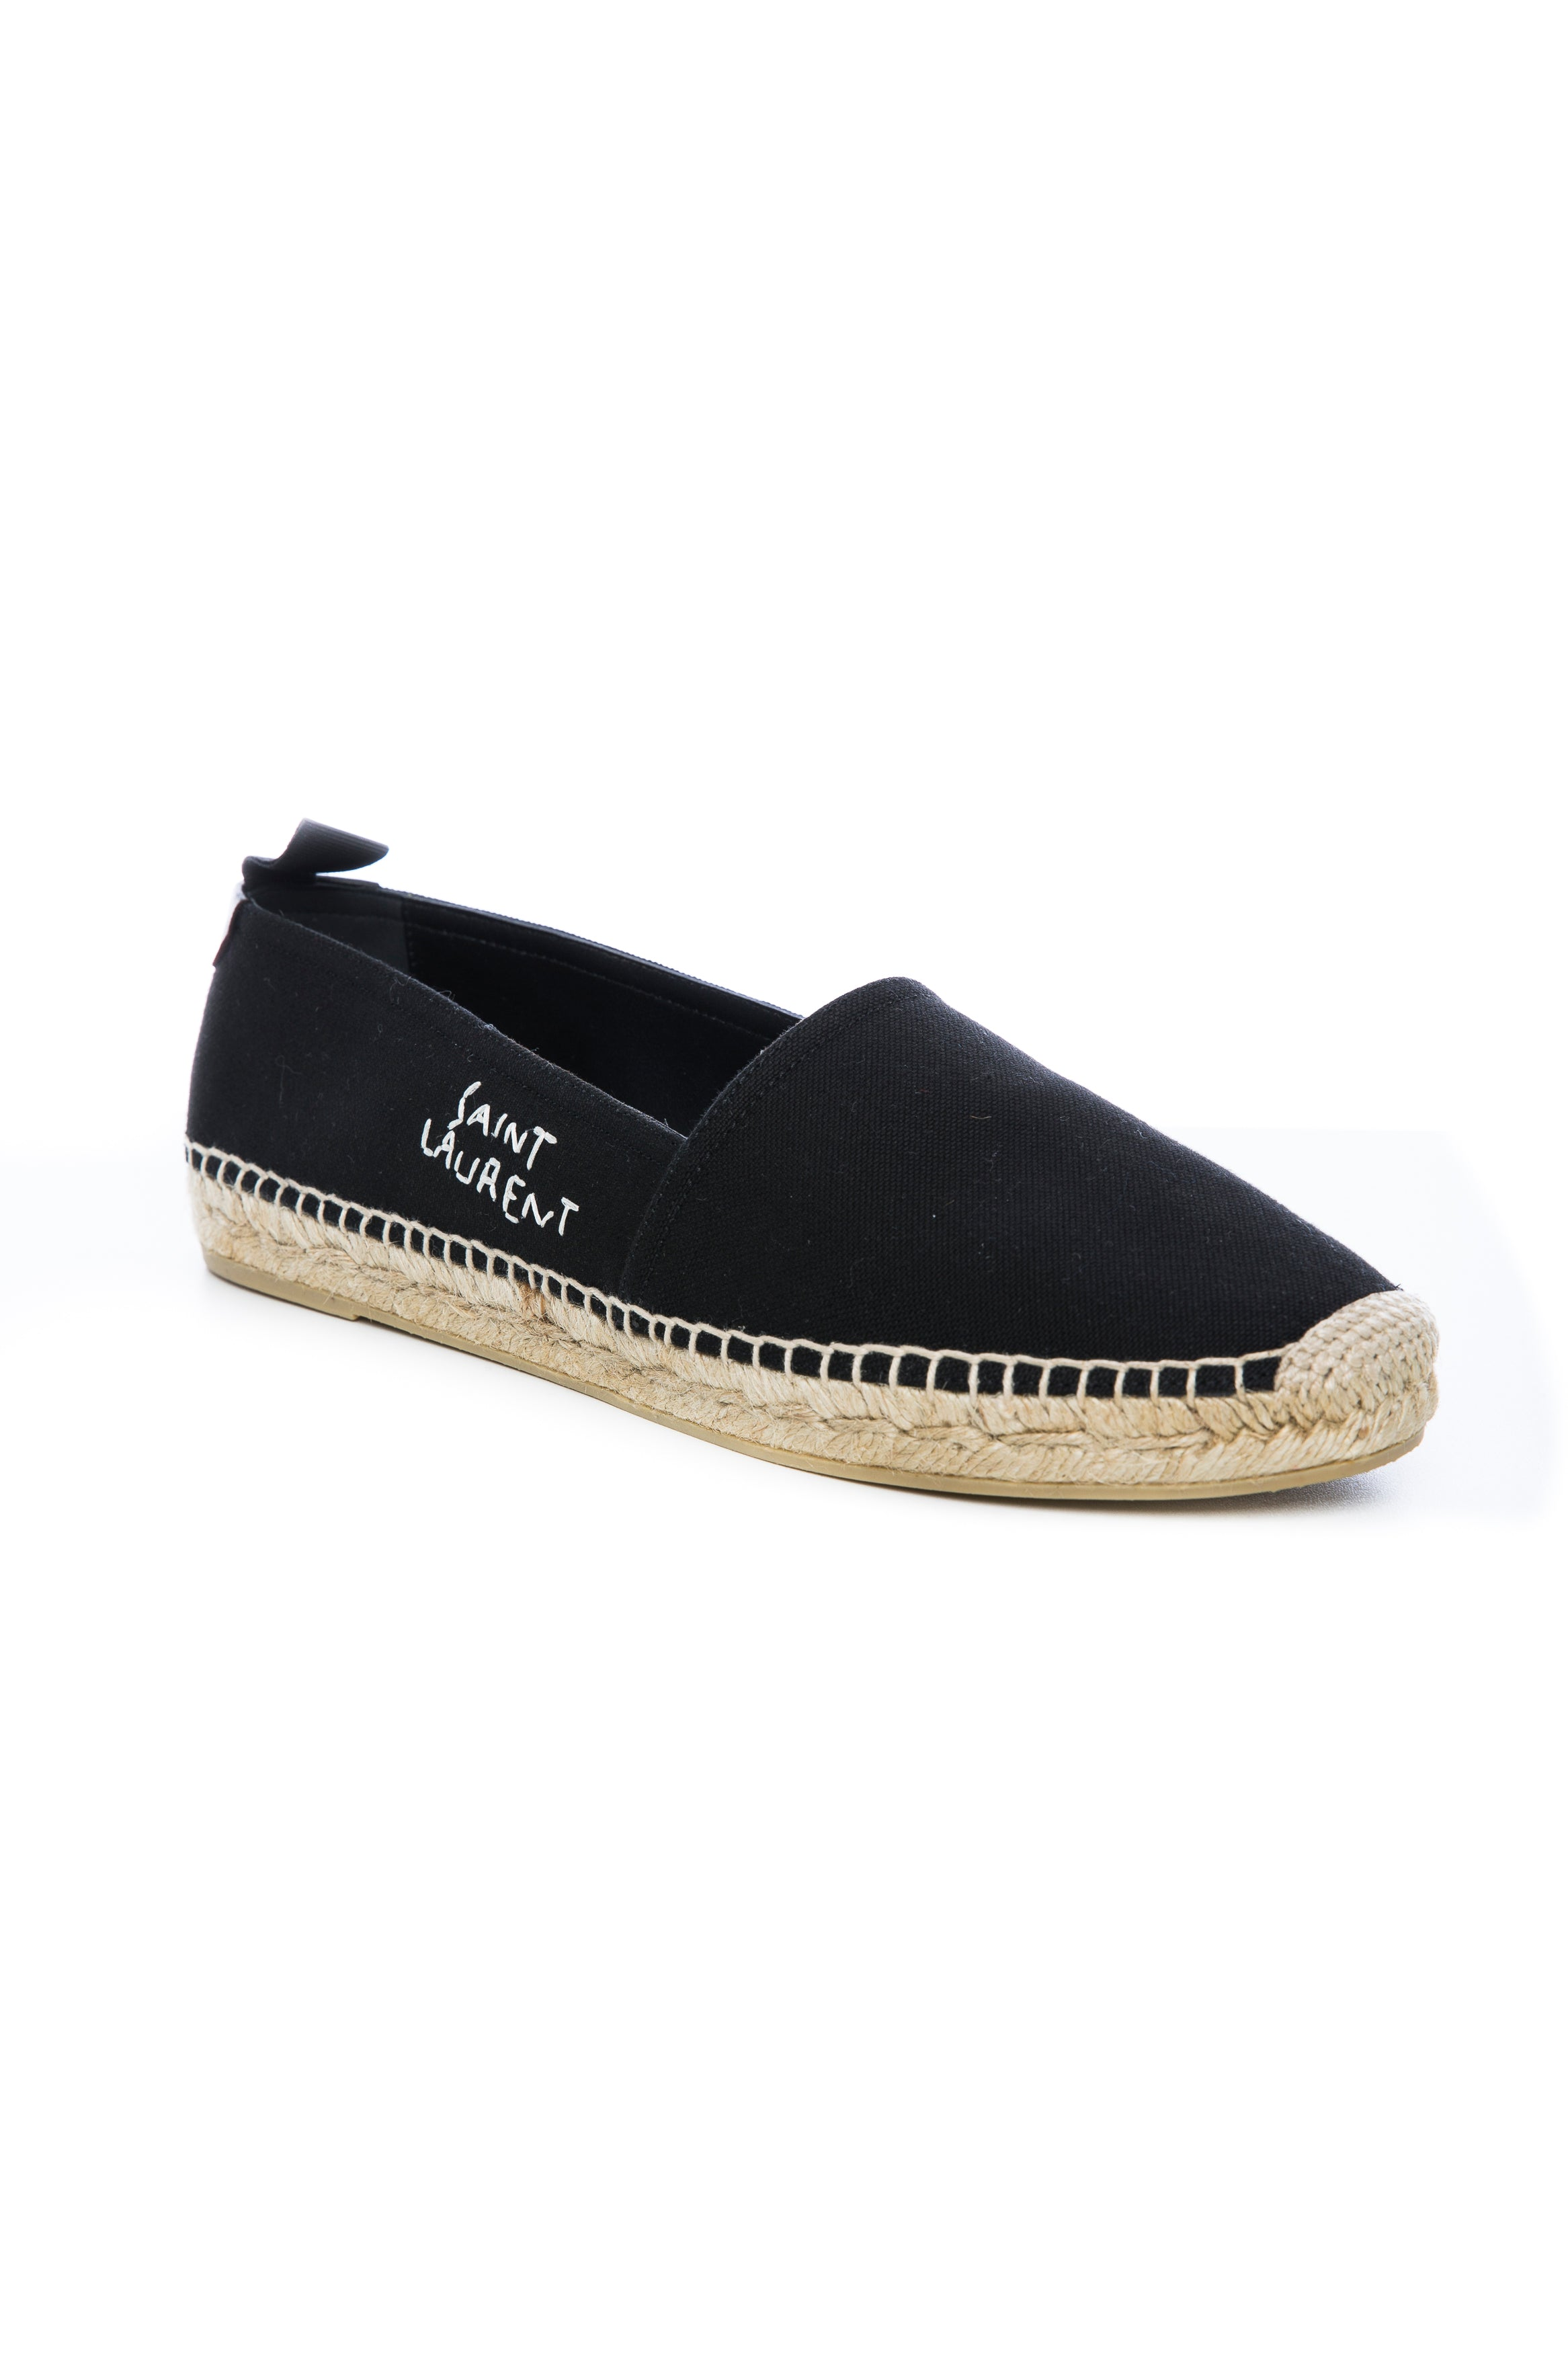 EMBROIDED ESPADRILLE IN BLACK